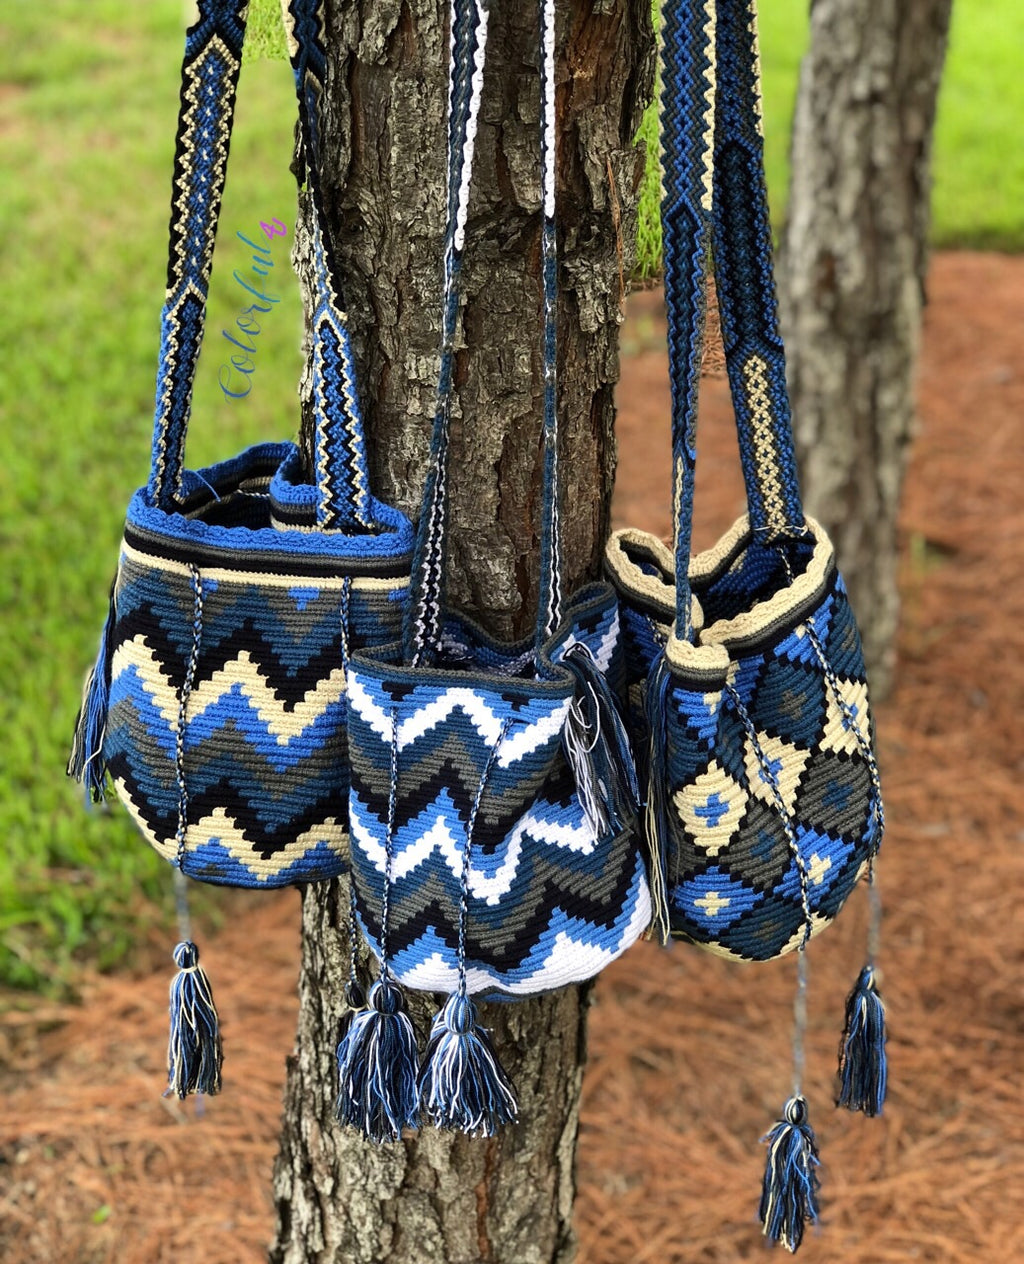 Blue Medium Crochet Bag-Bag-Crossbody Boho Bag-Bohemian Bag-Wayuu Bag